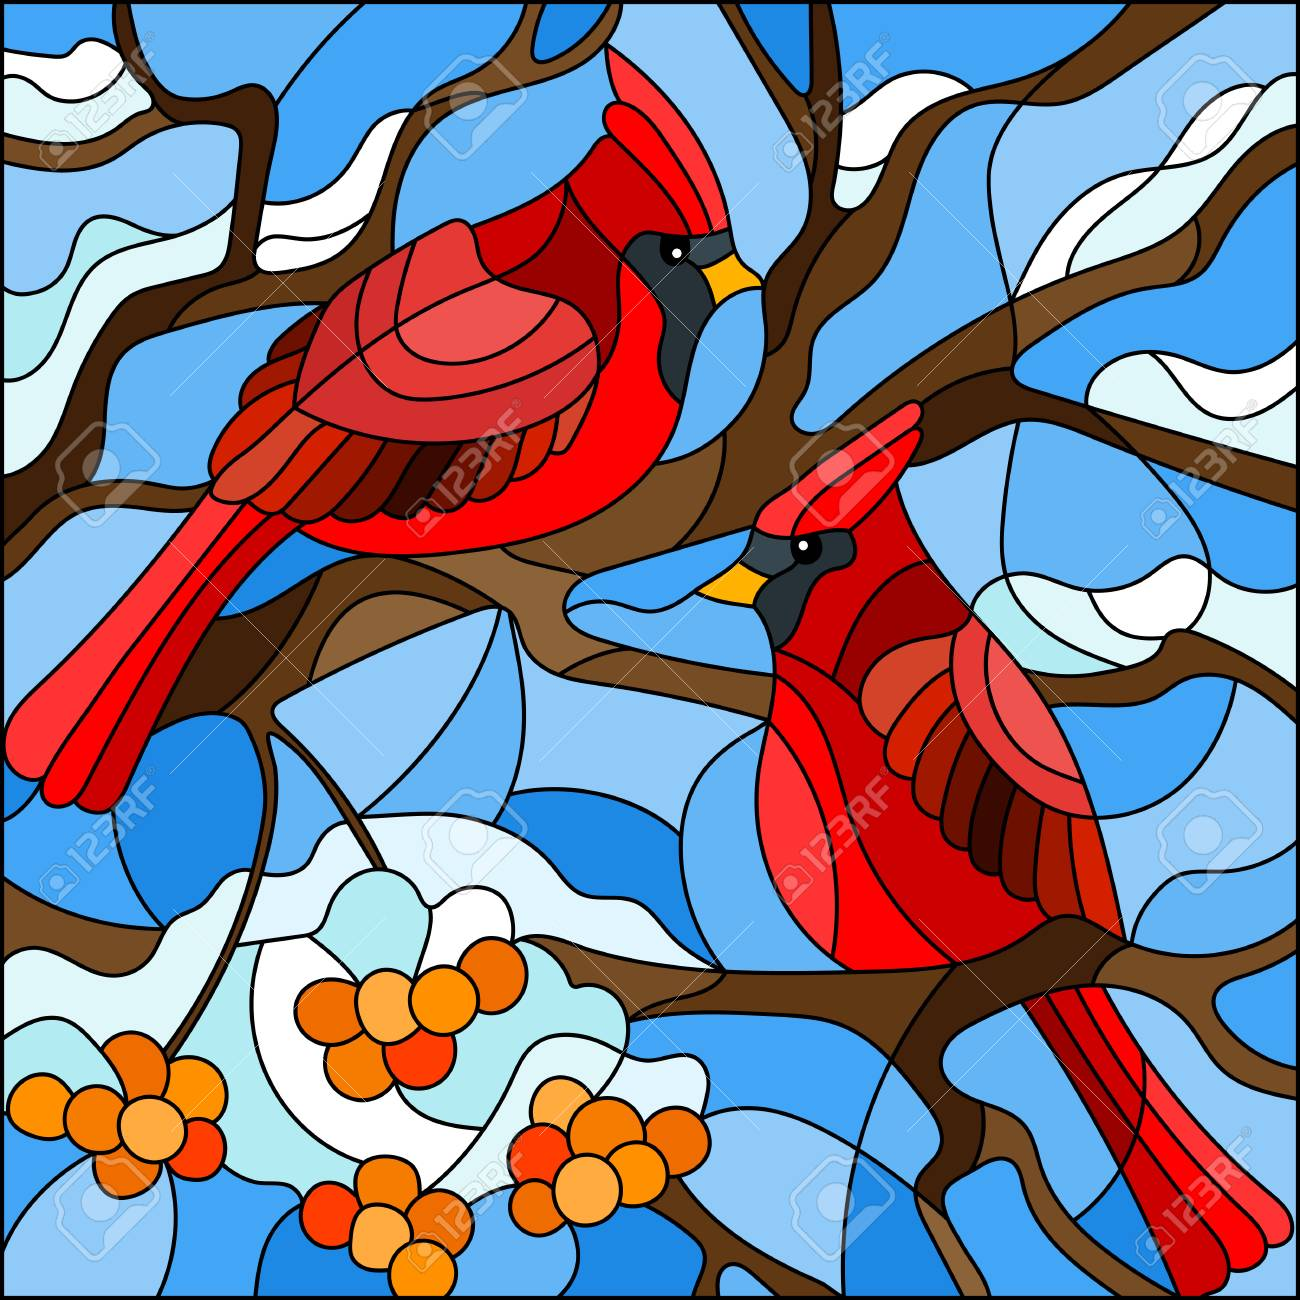 Illustration In Stained Glass Style Pair Of Birds Cardinals Royalty Free Cliparts Vectors And Stock Illustration Image 108085381